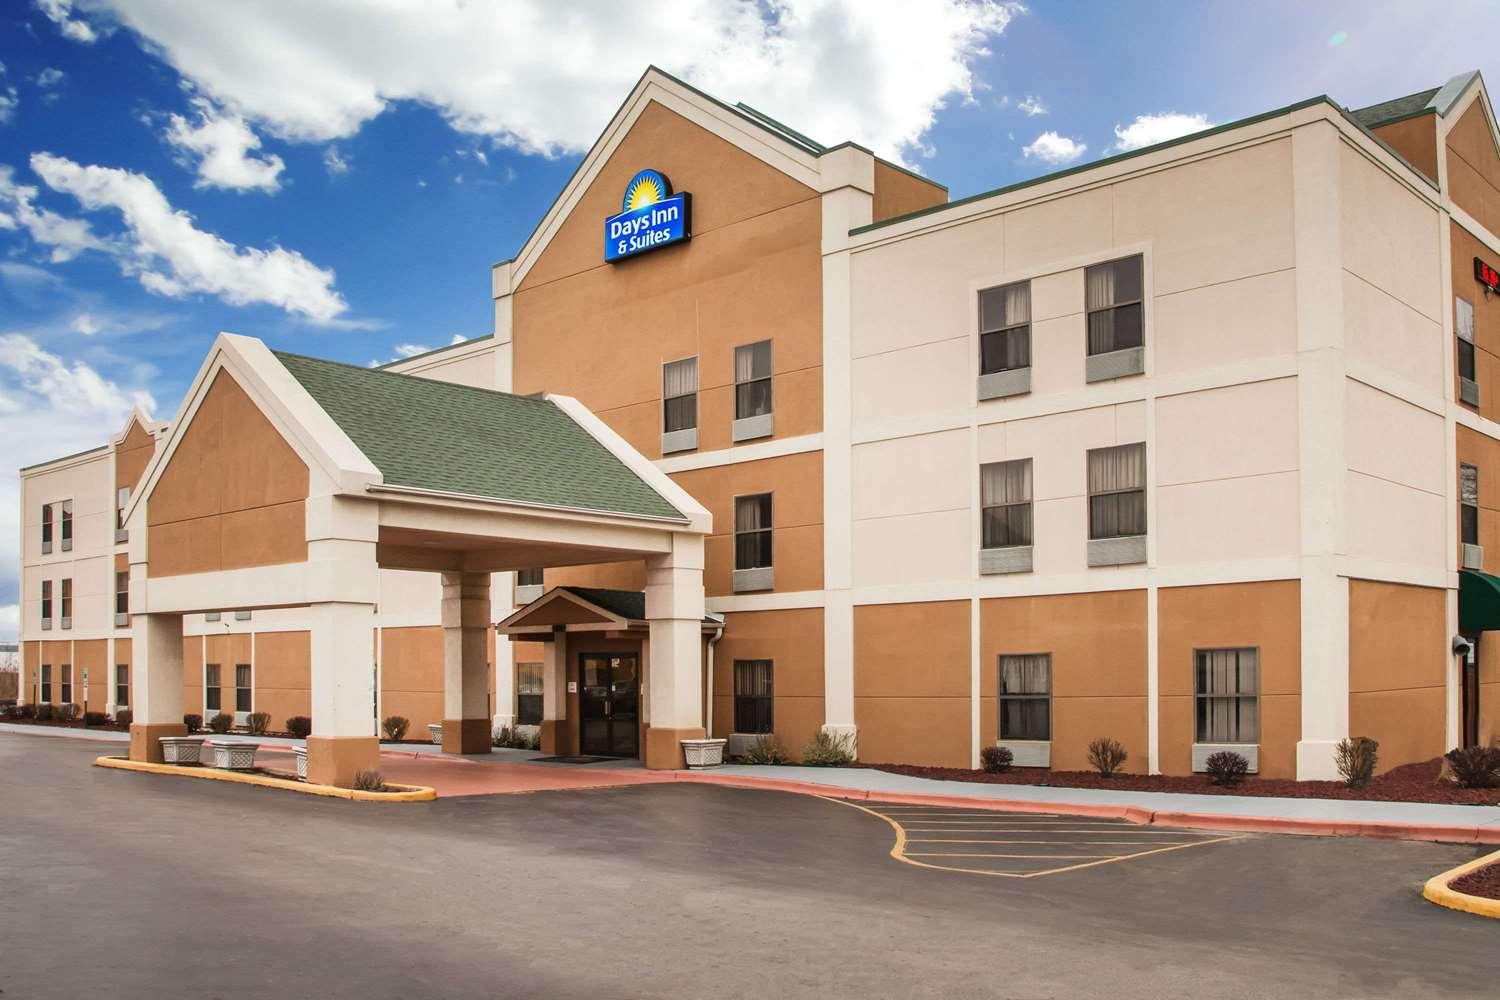 Days Inn & Suites Harvey